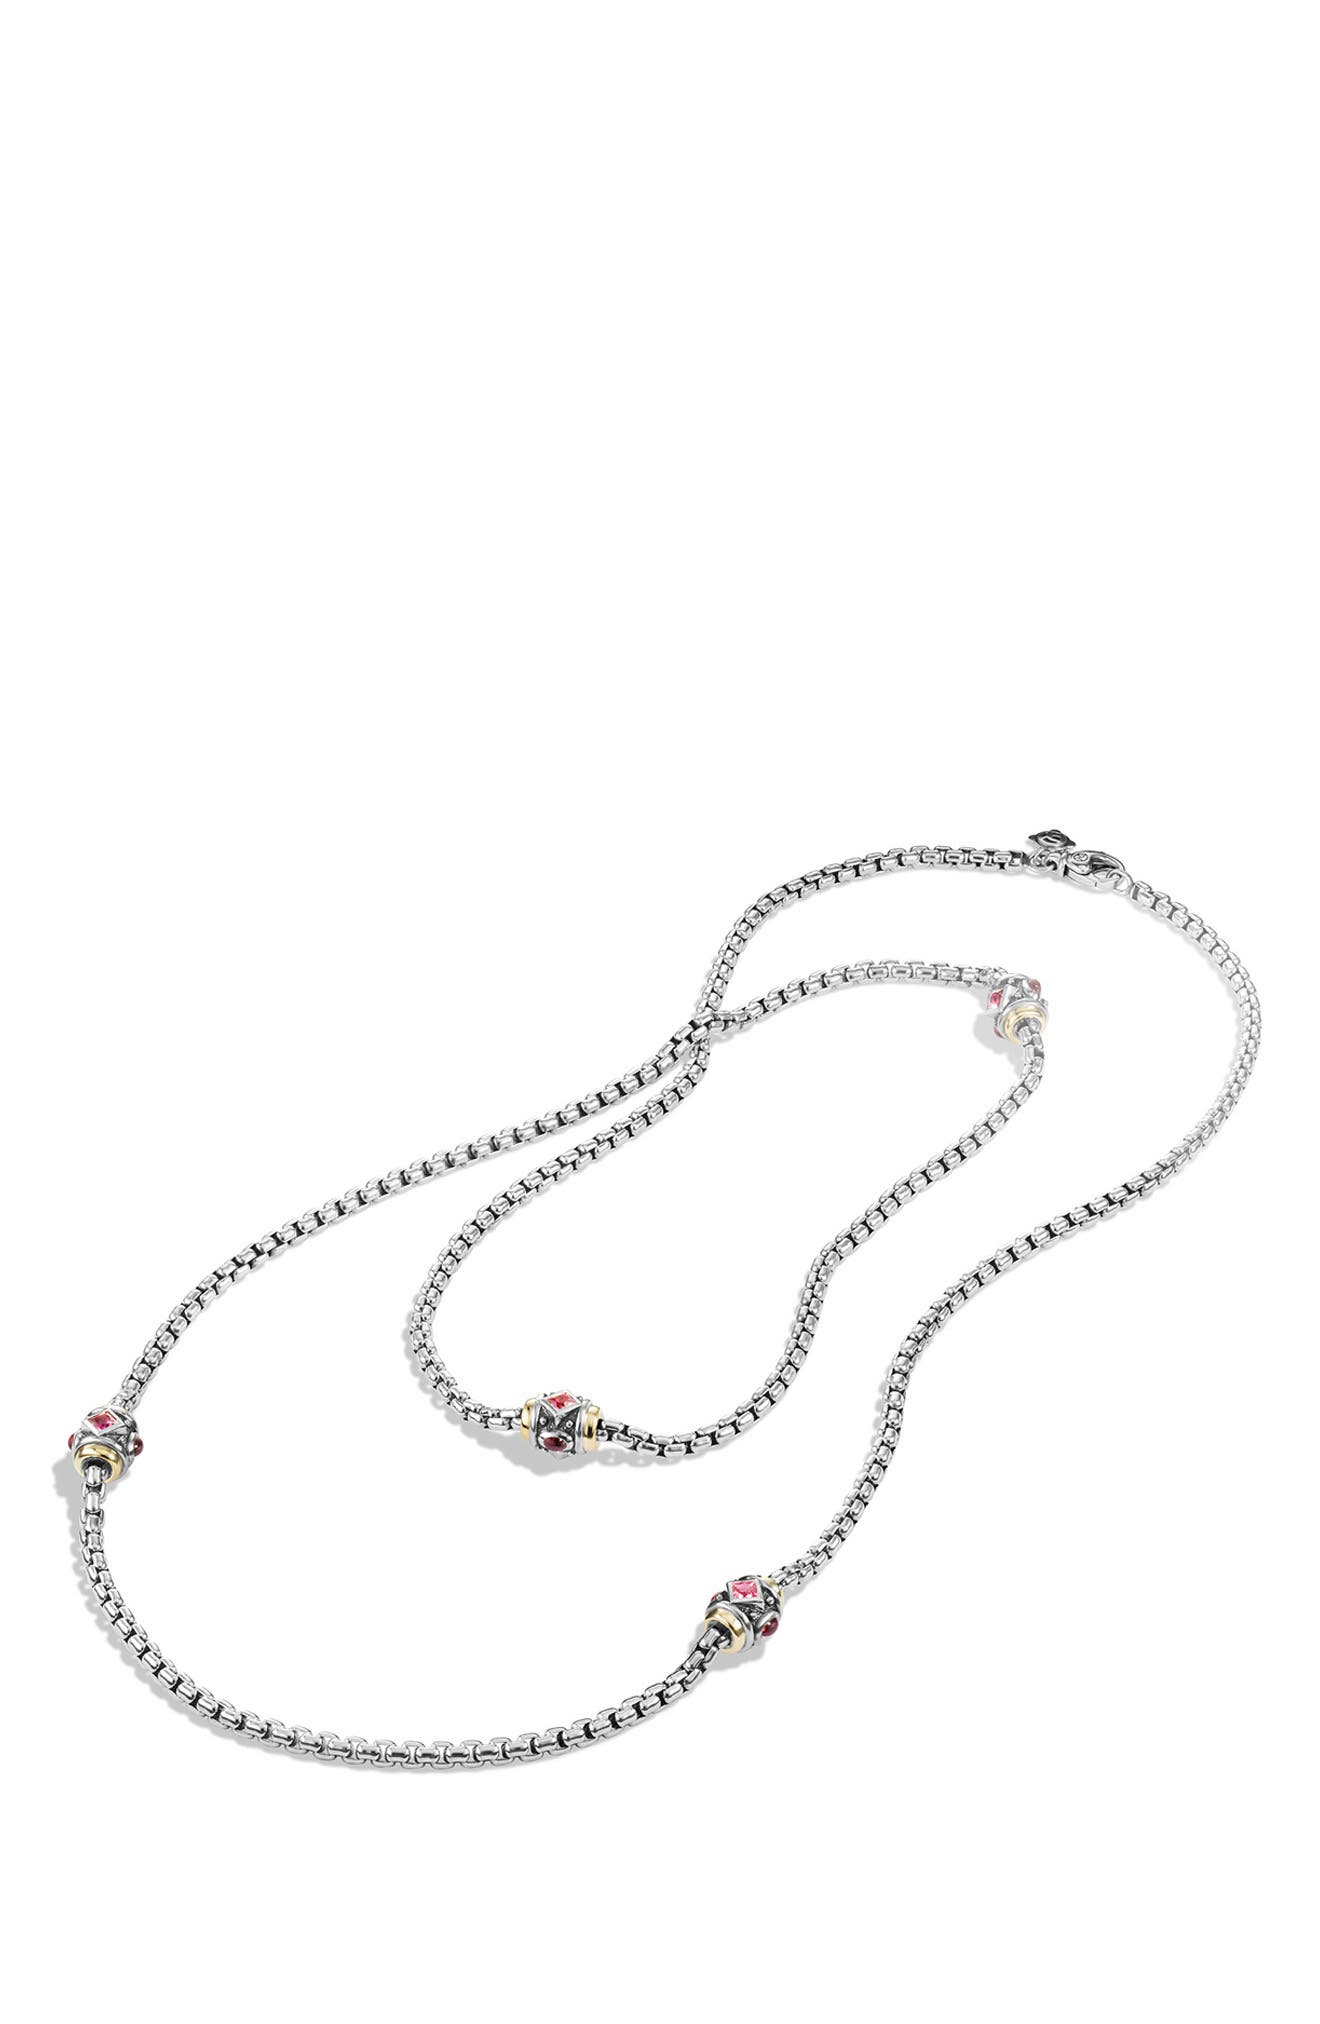 'Renaissance' Necklace with Semiprecious Stone and 18k Gold,                             Alternate thumbnail 2, color,                             650